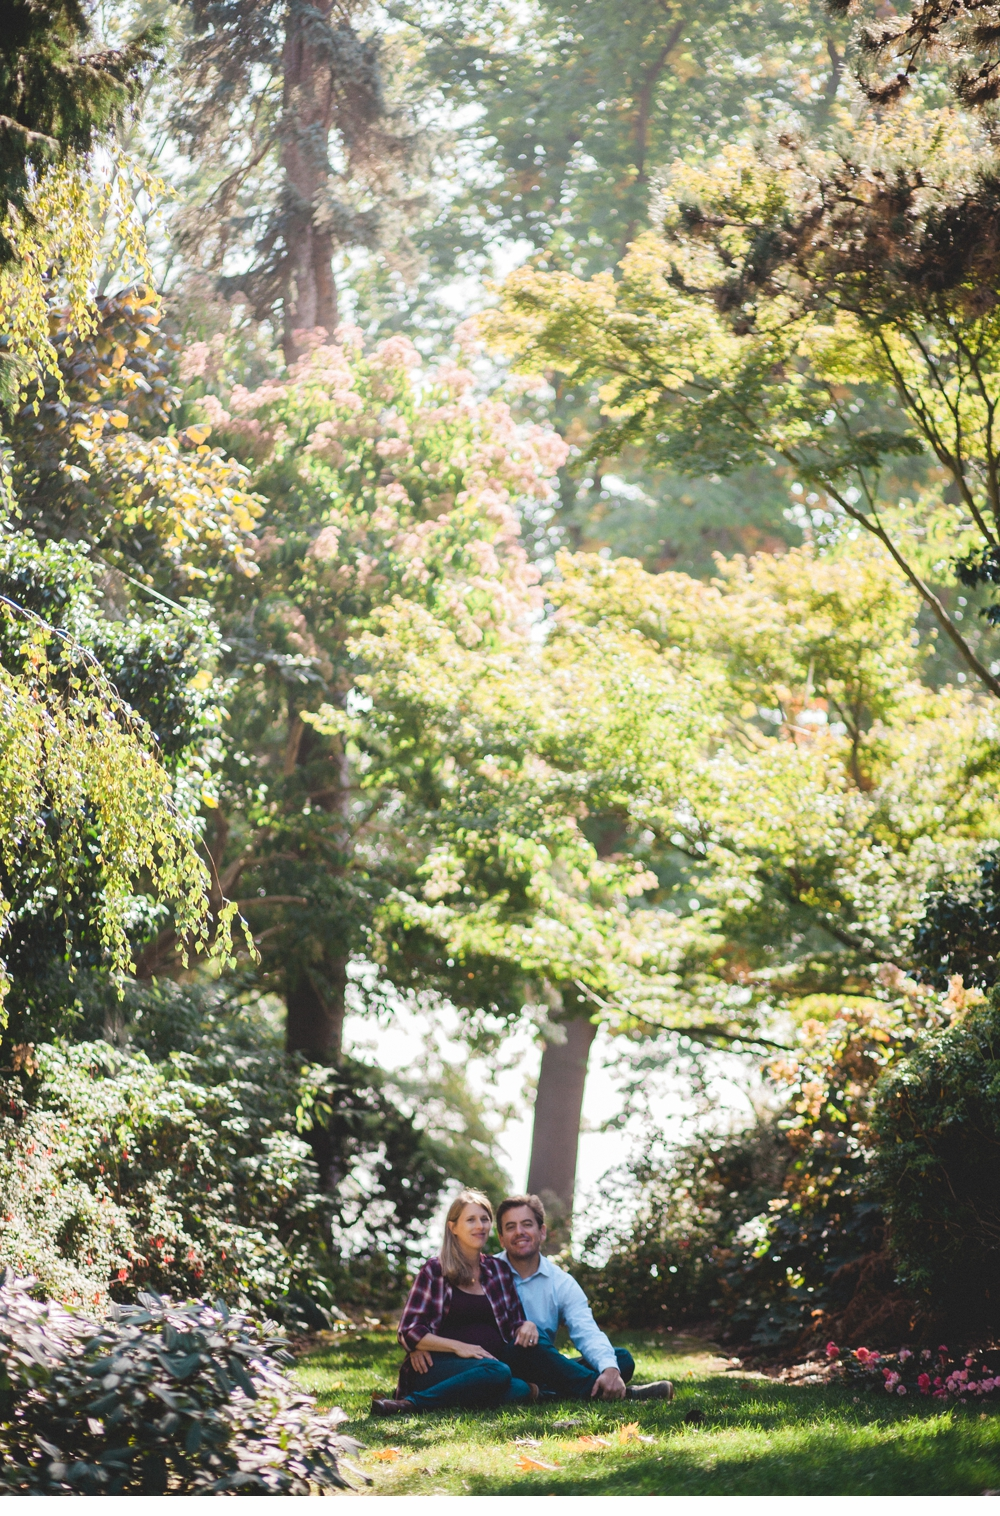 Seattle_Maternity_lifestyle_portrait_session_Seward_Park 11.jpg